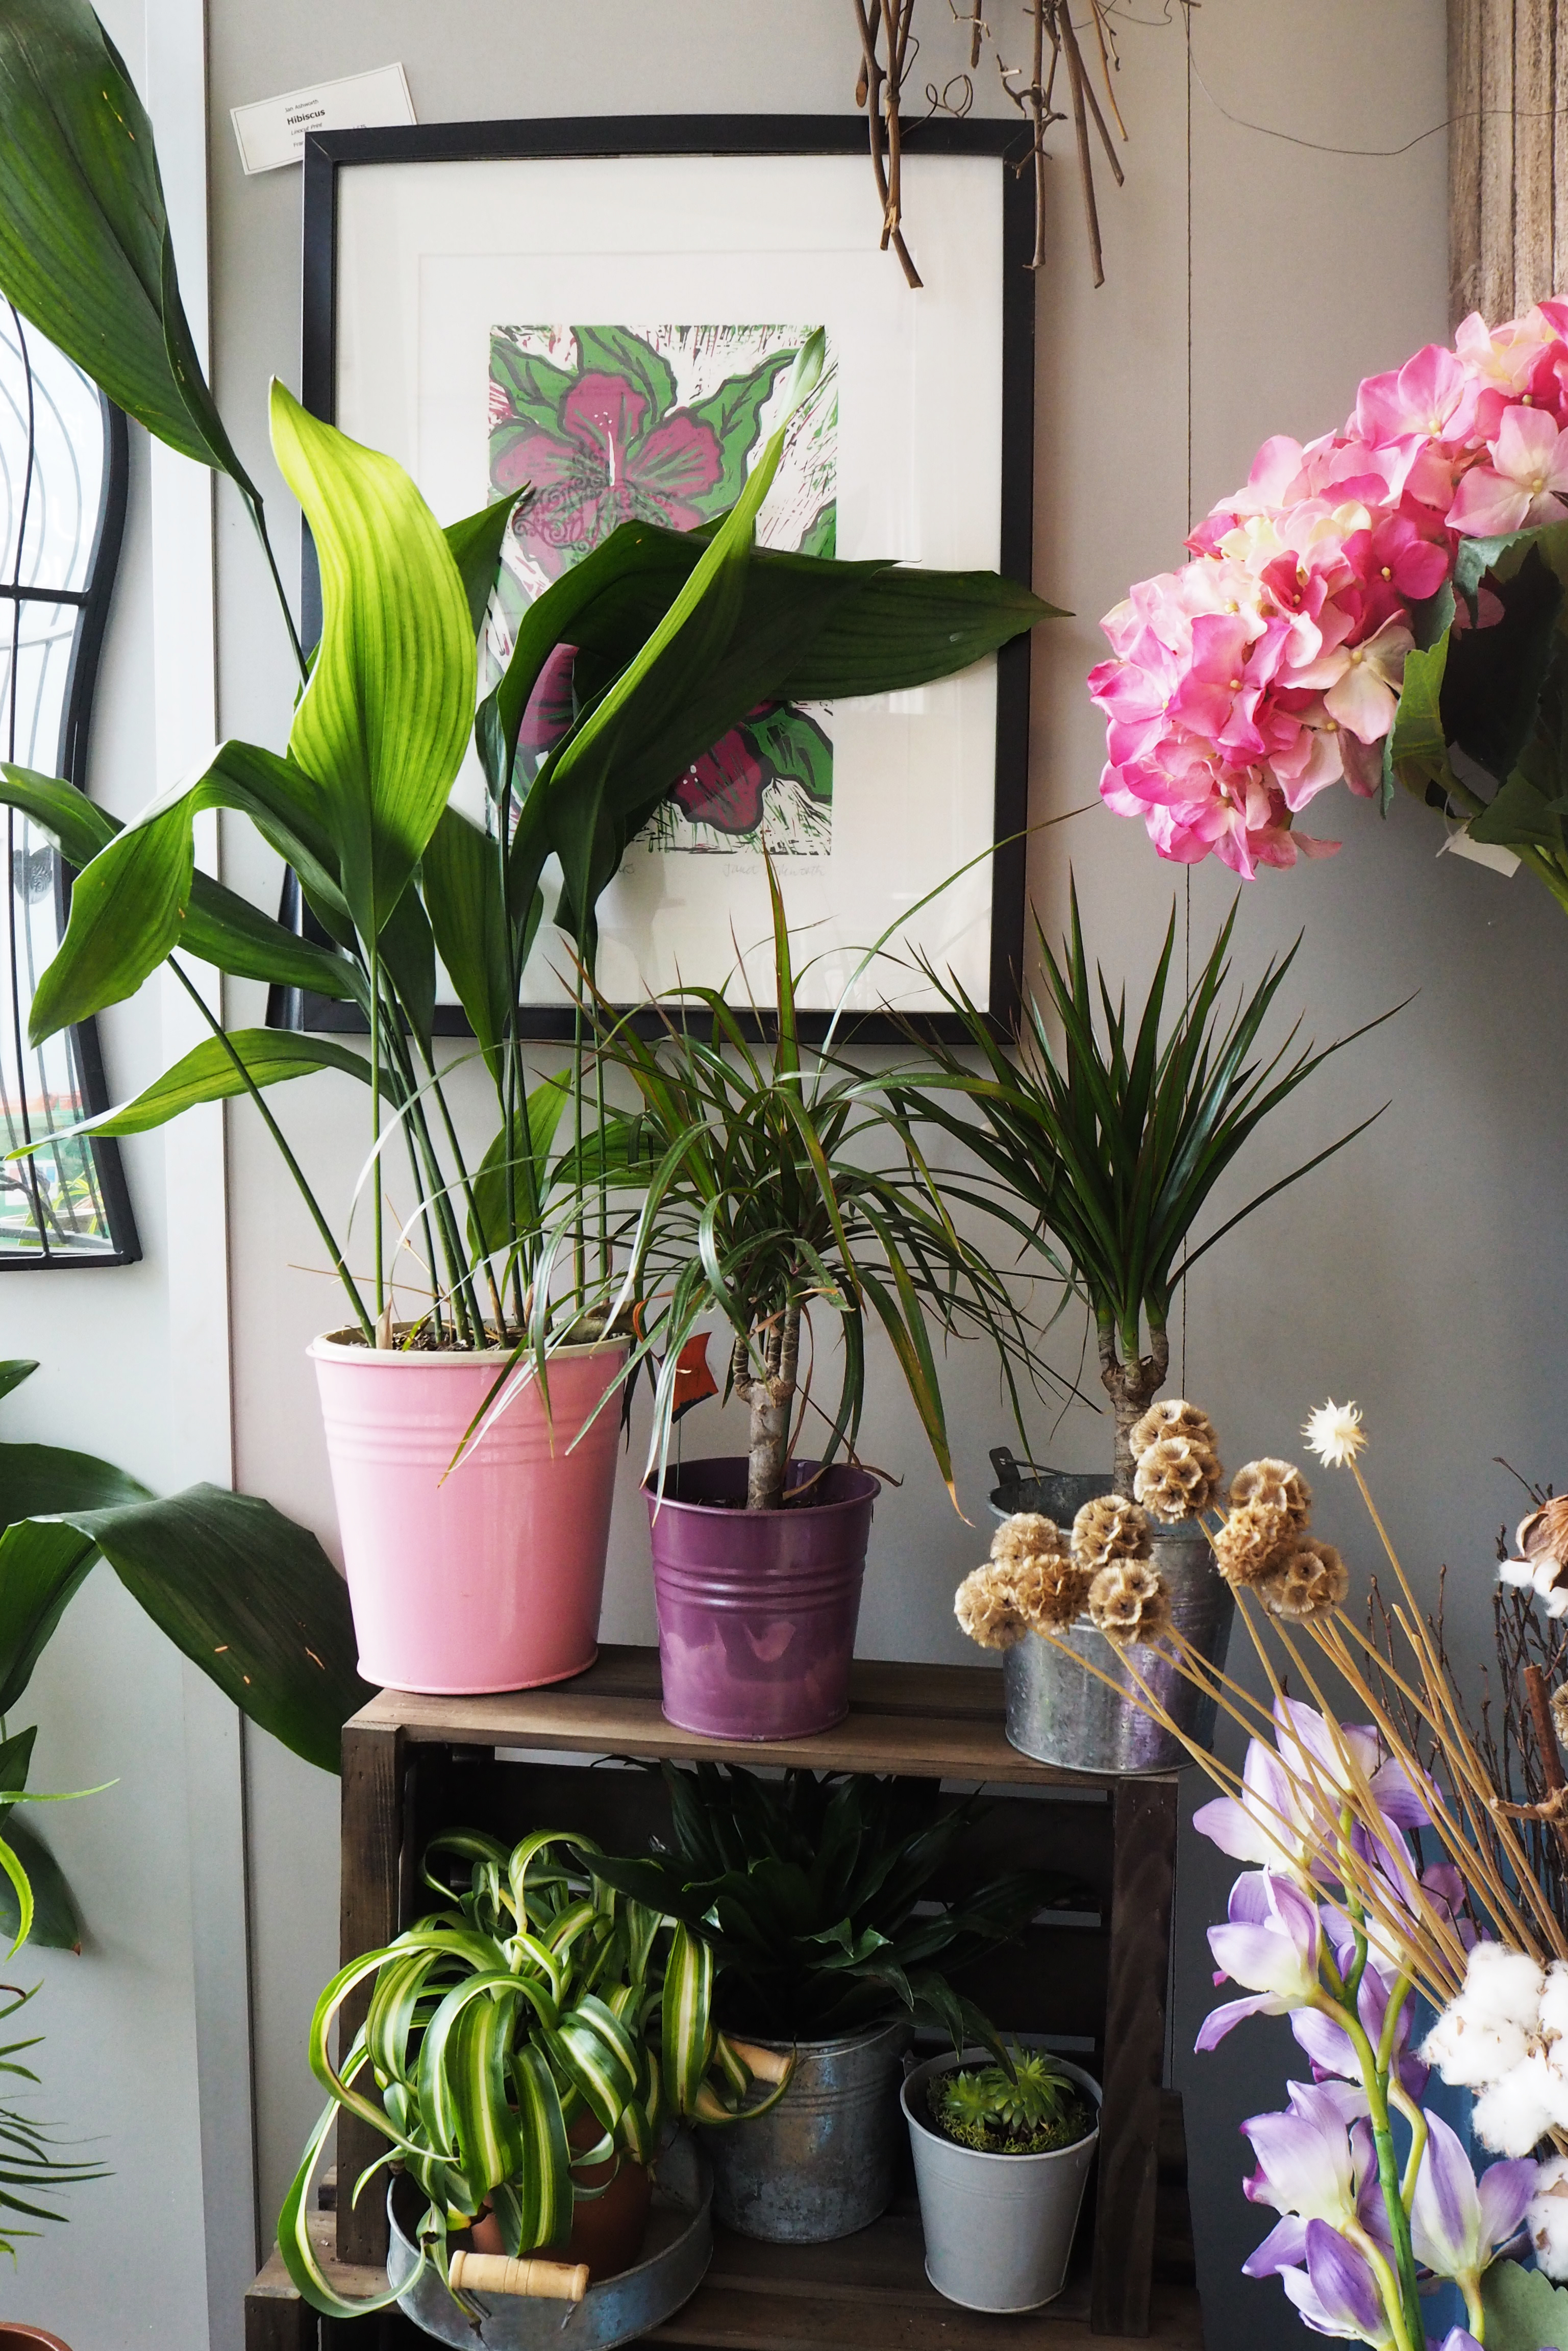 1970s houseplants - aspidistra and spider plant